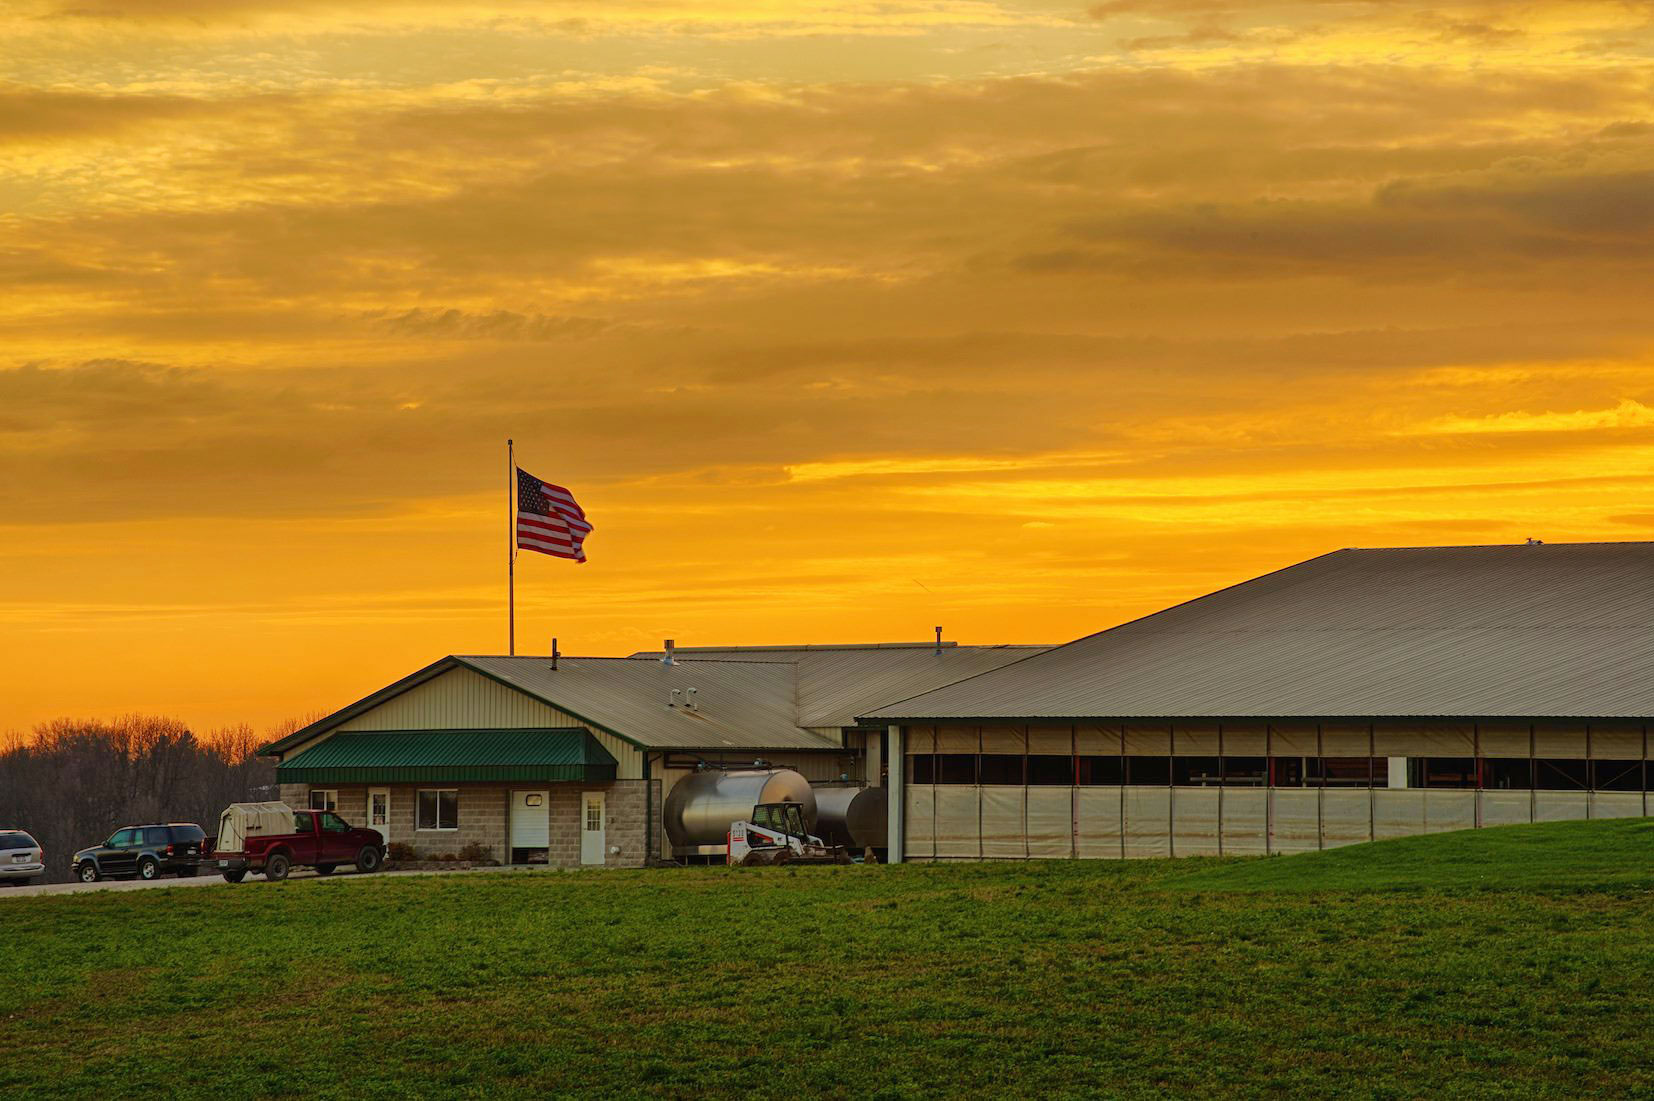 Milking robots will work in most existing barns. Retrofitting your existing barn may be the answer you've been looking for